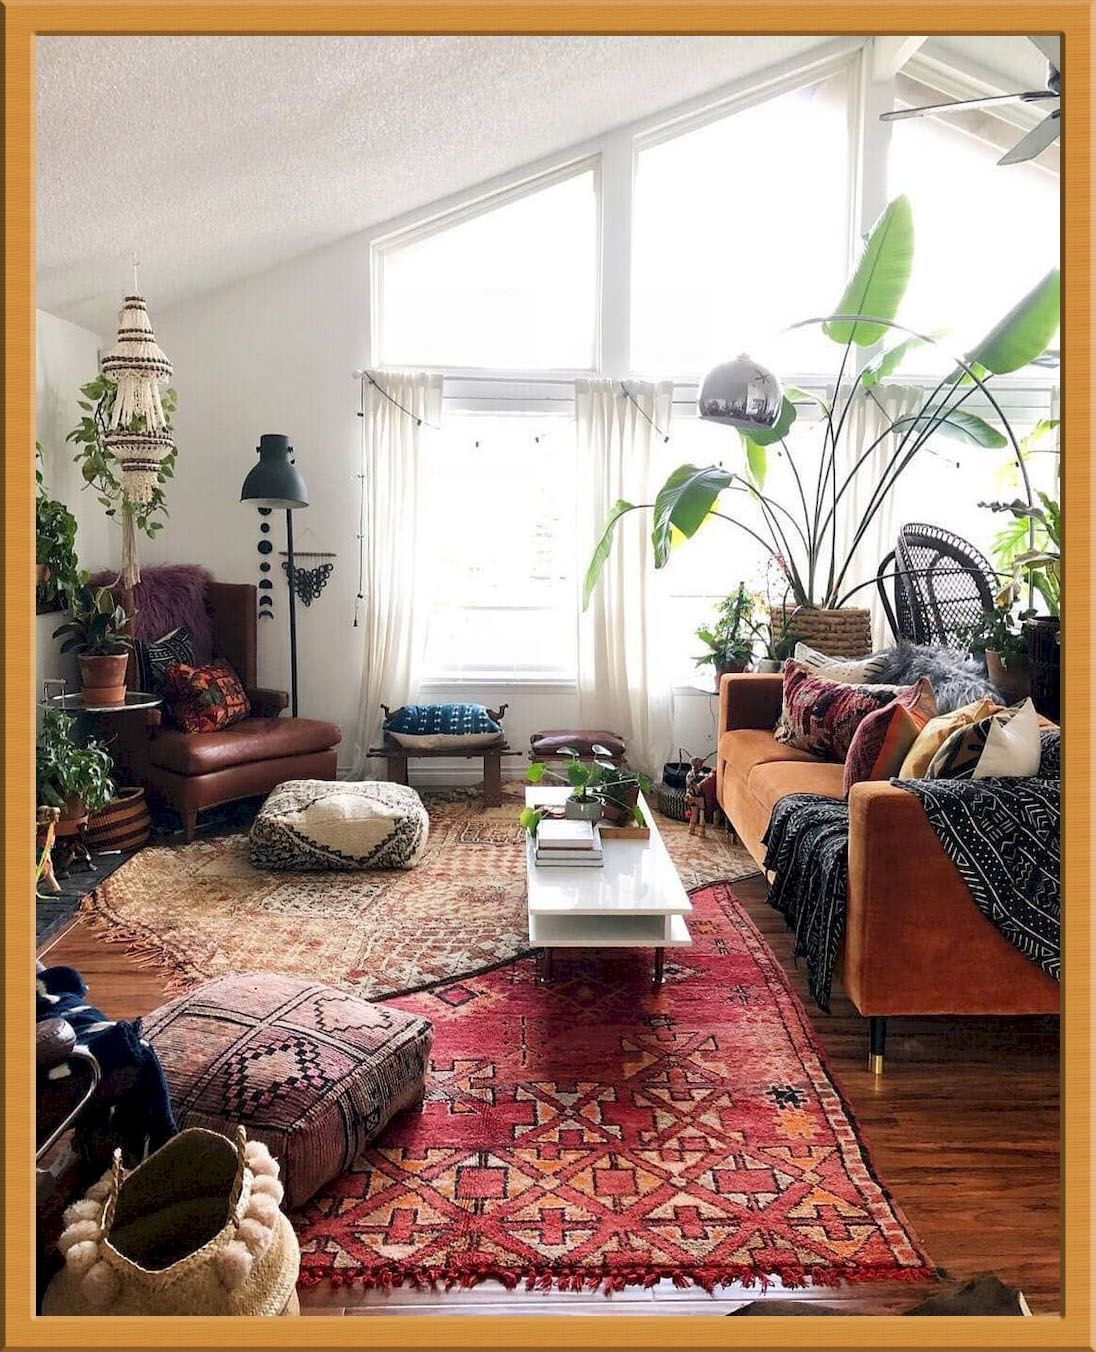 What Make Bohemian Homedecor Don't Want You To Know